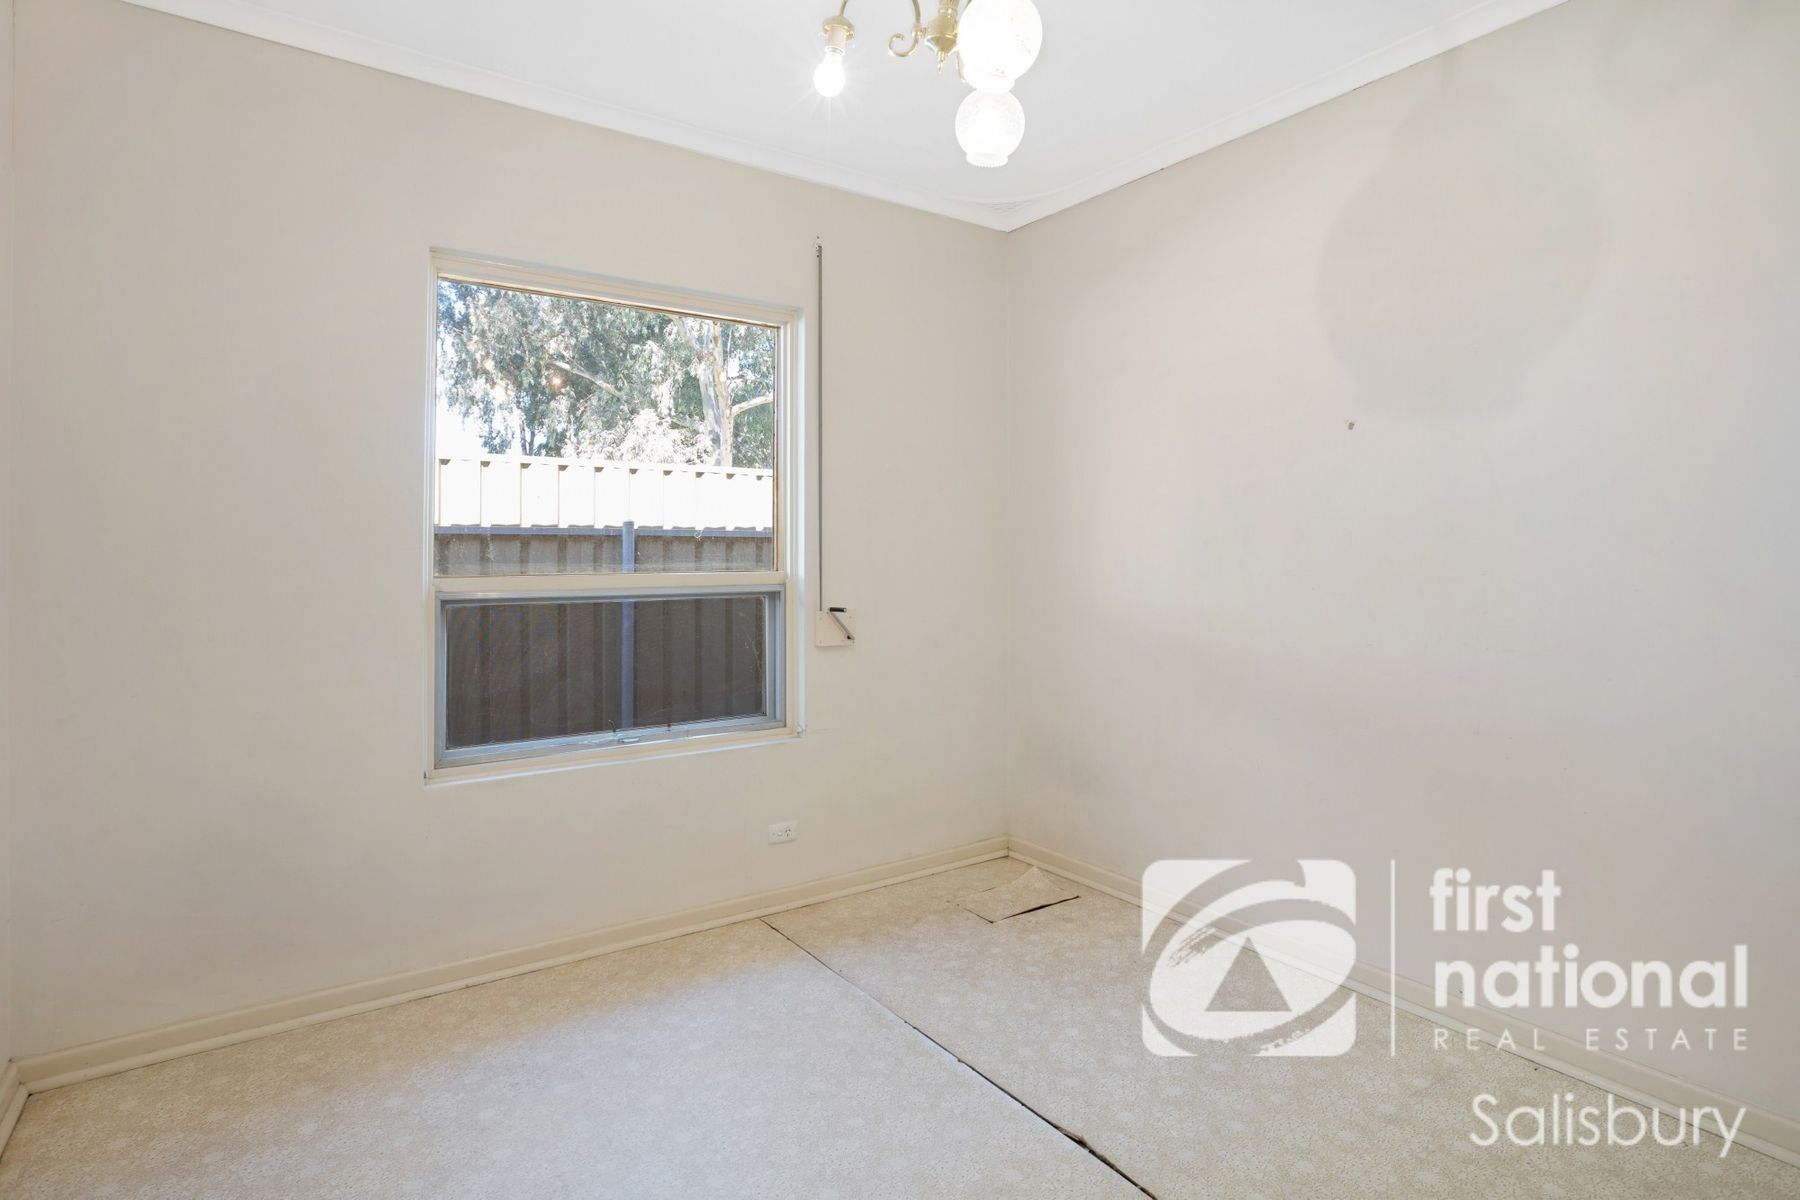 1 Harvey Avenue, Salisbury, SA 5108